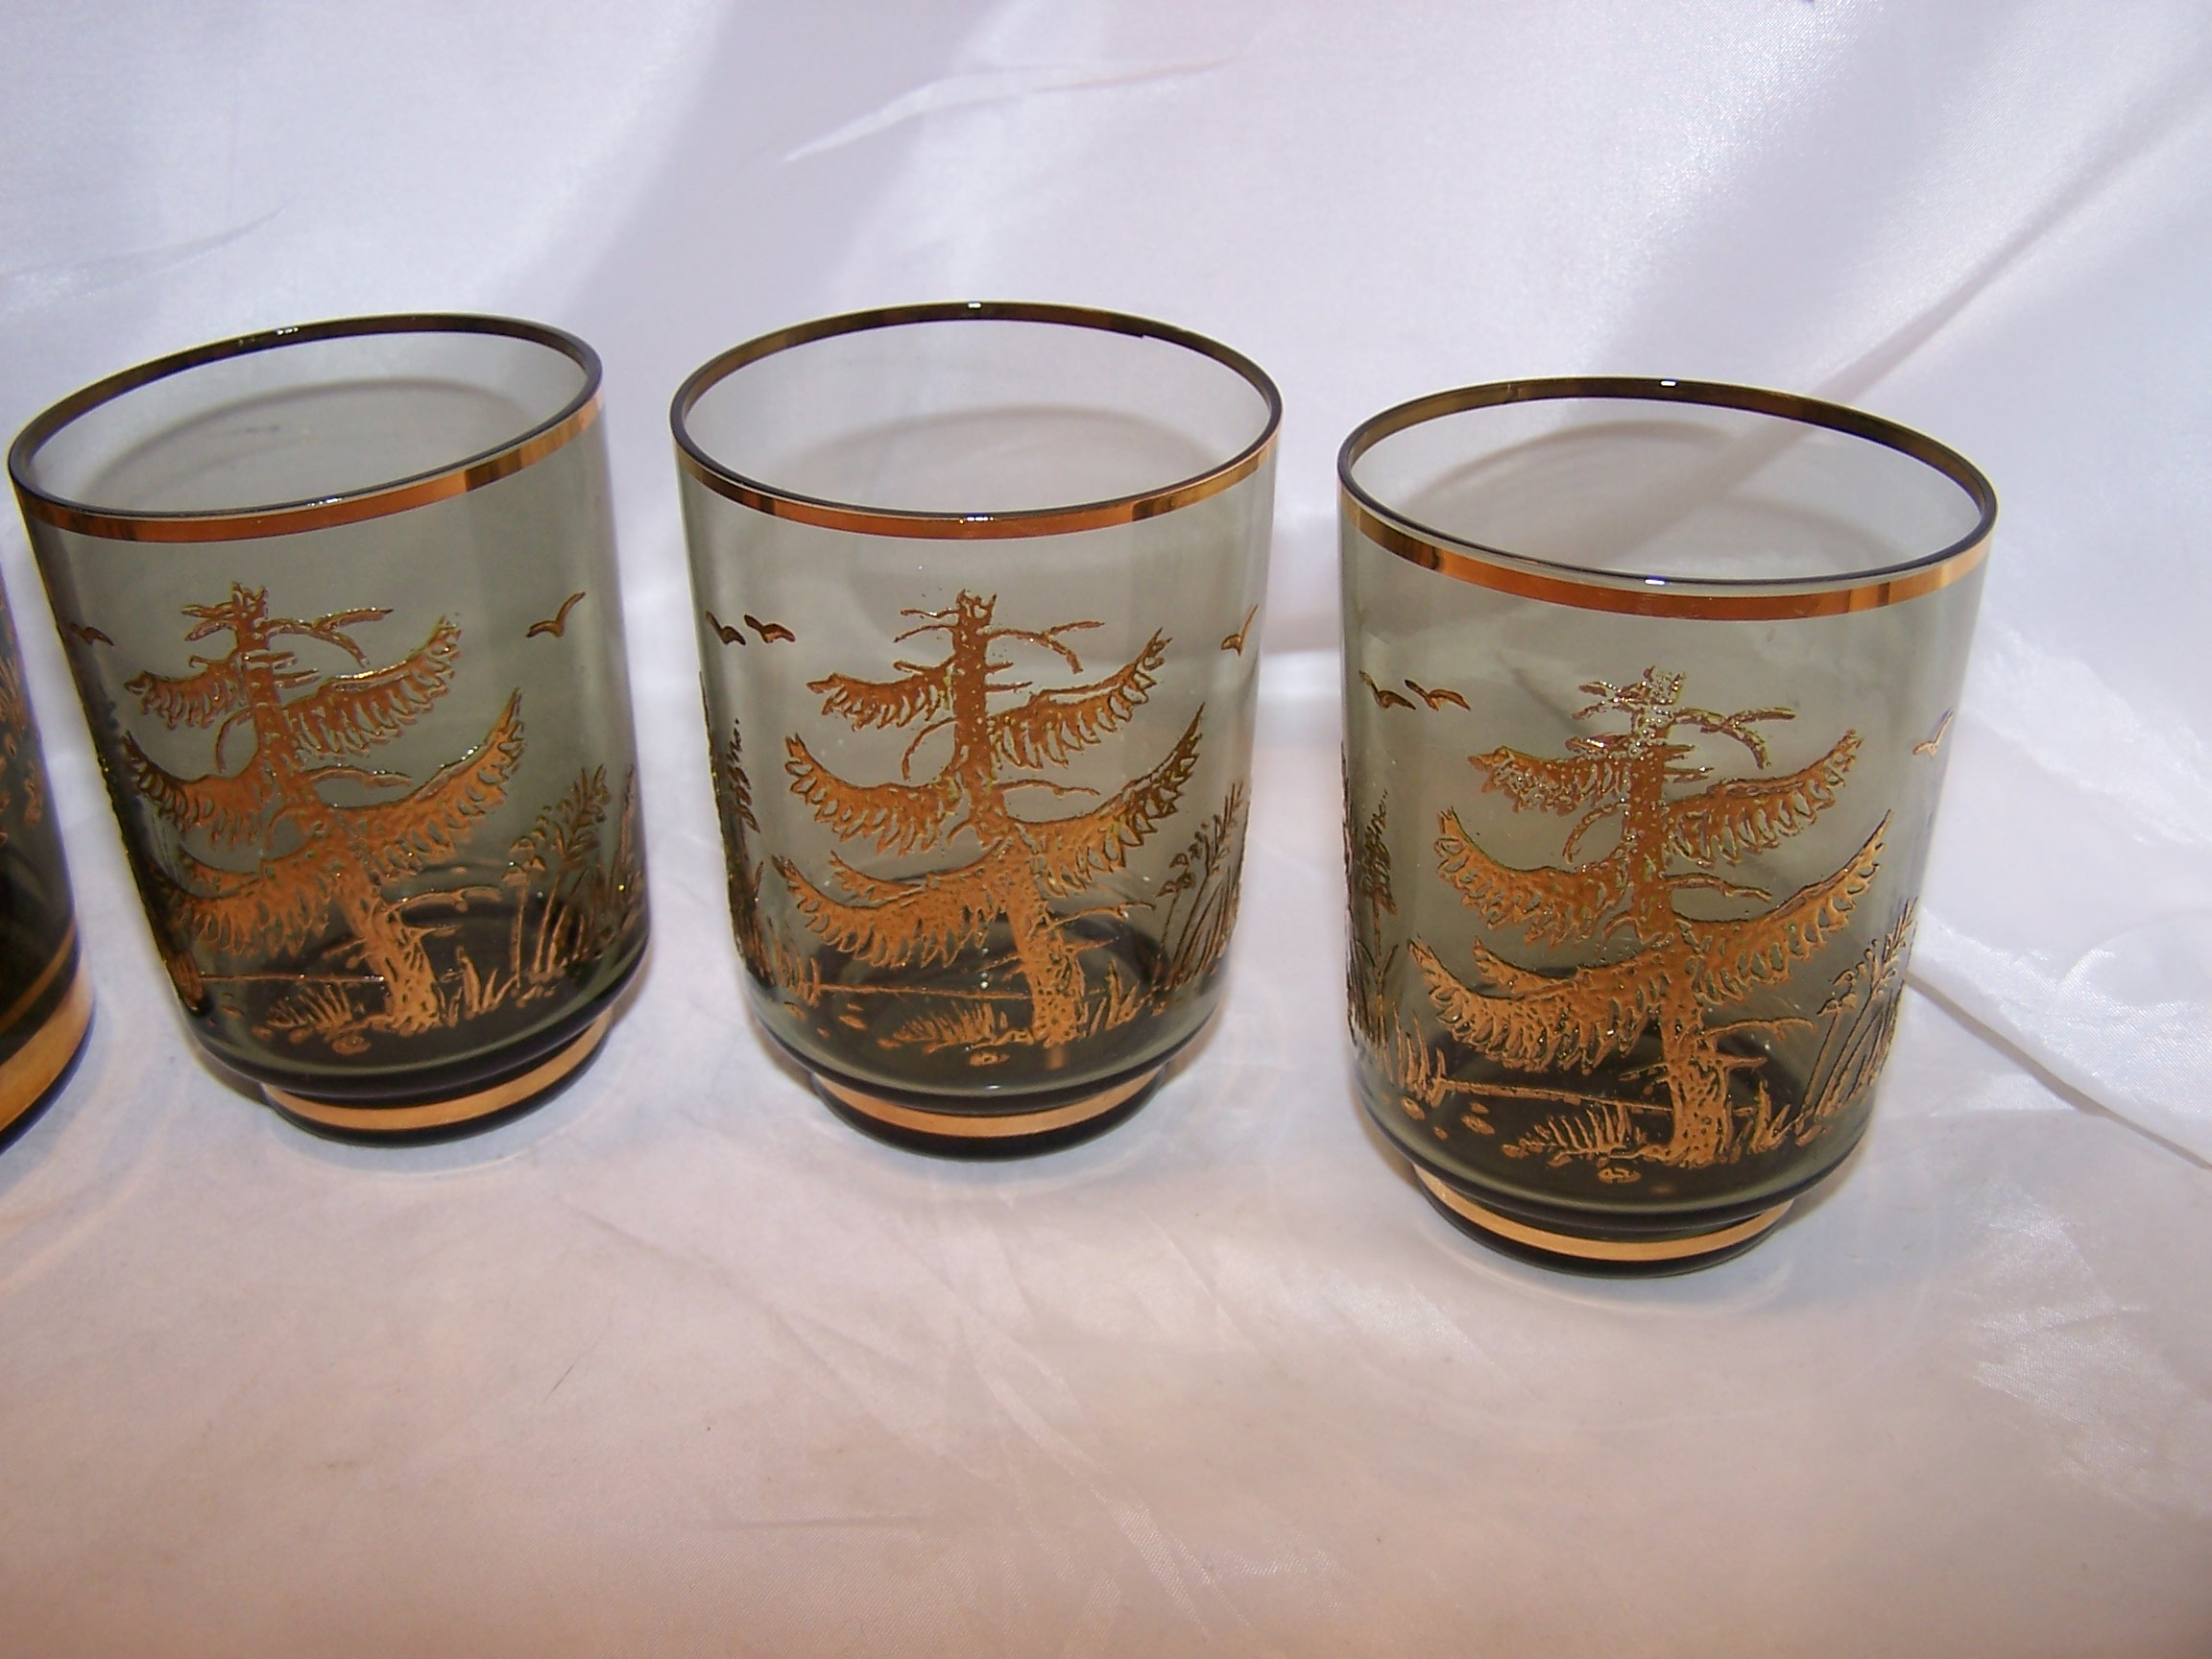 Image 1 of Bohemia Crystal Decanter, Glasses, Mid Century Modern Czech